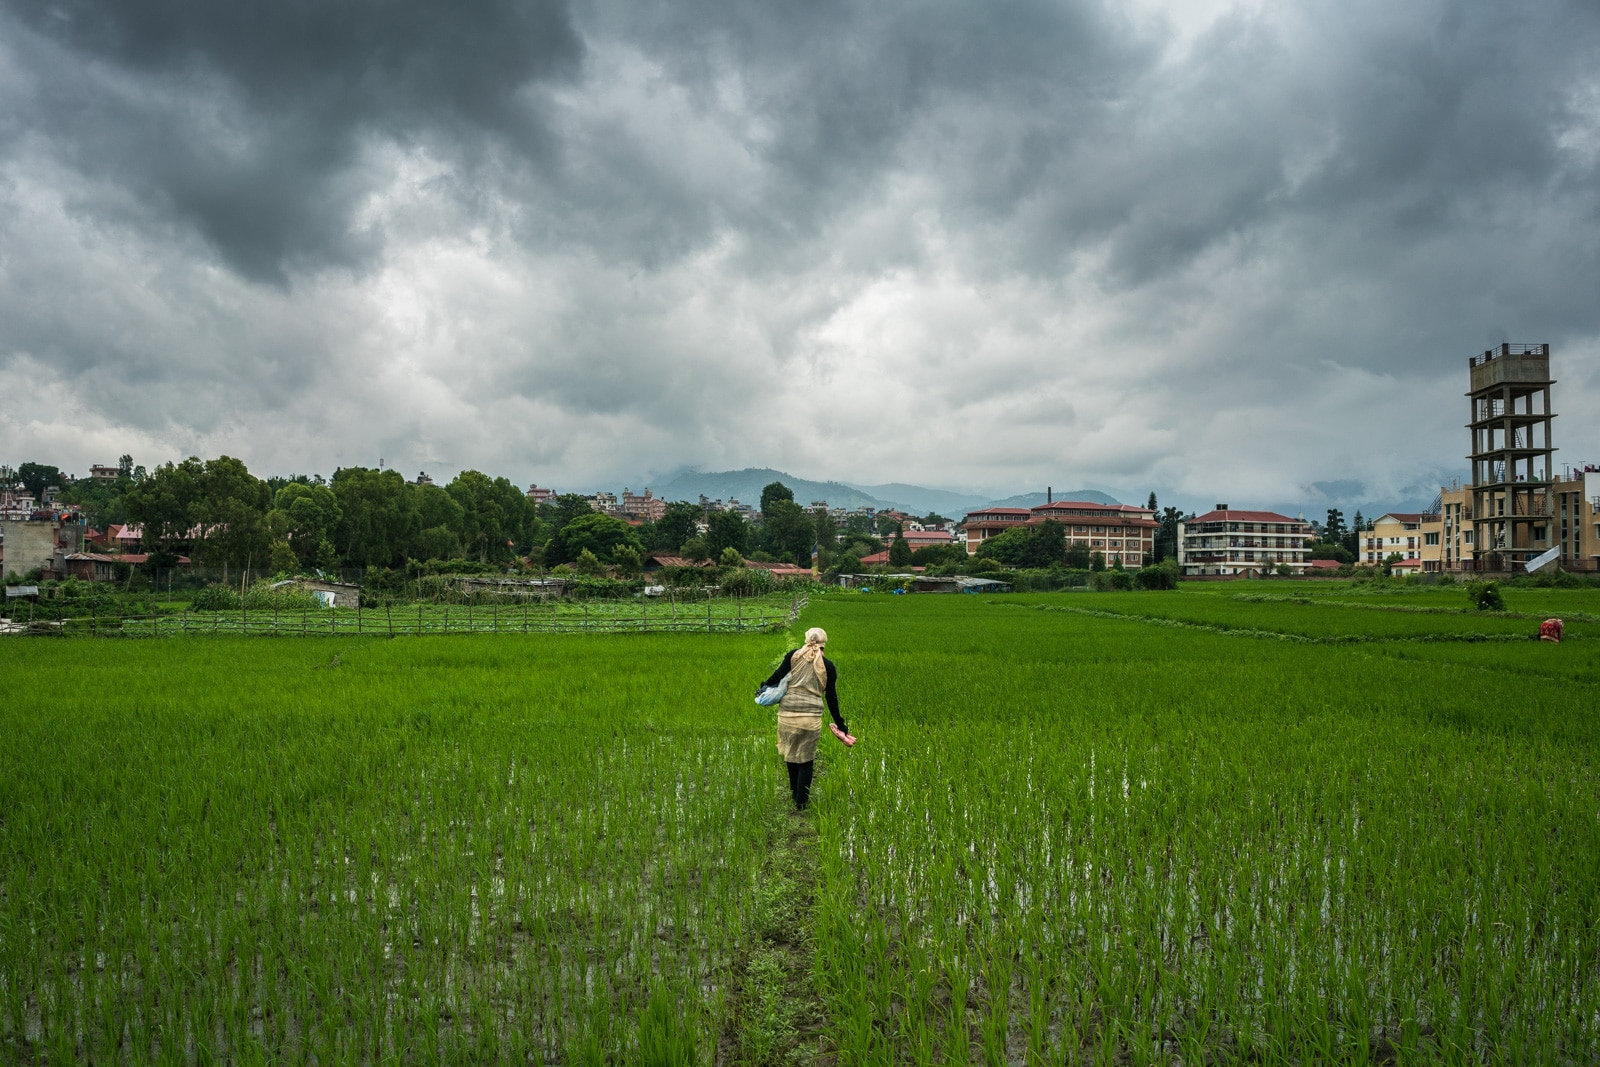 Scenes from Patan, Nepal - Sarita walking through rice fields inside Patan city - Lost With Purpose travel blog